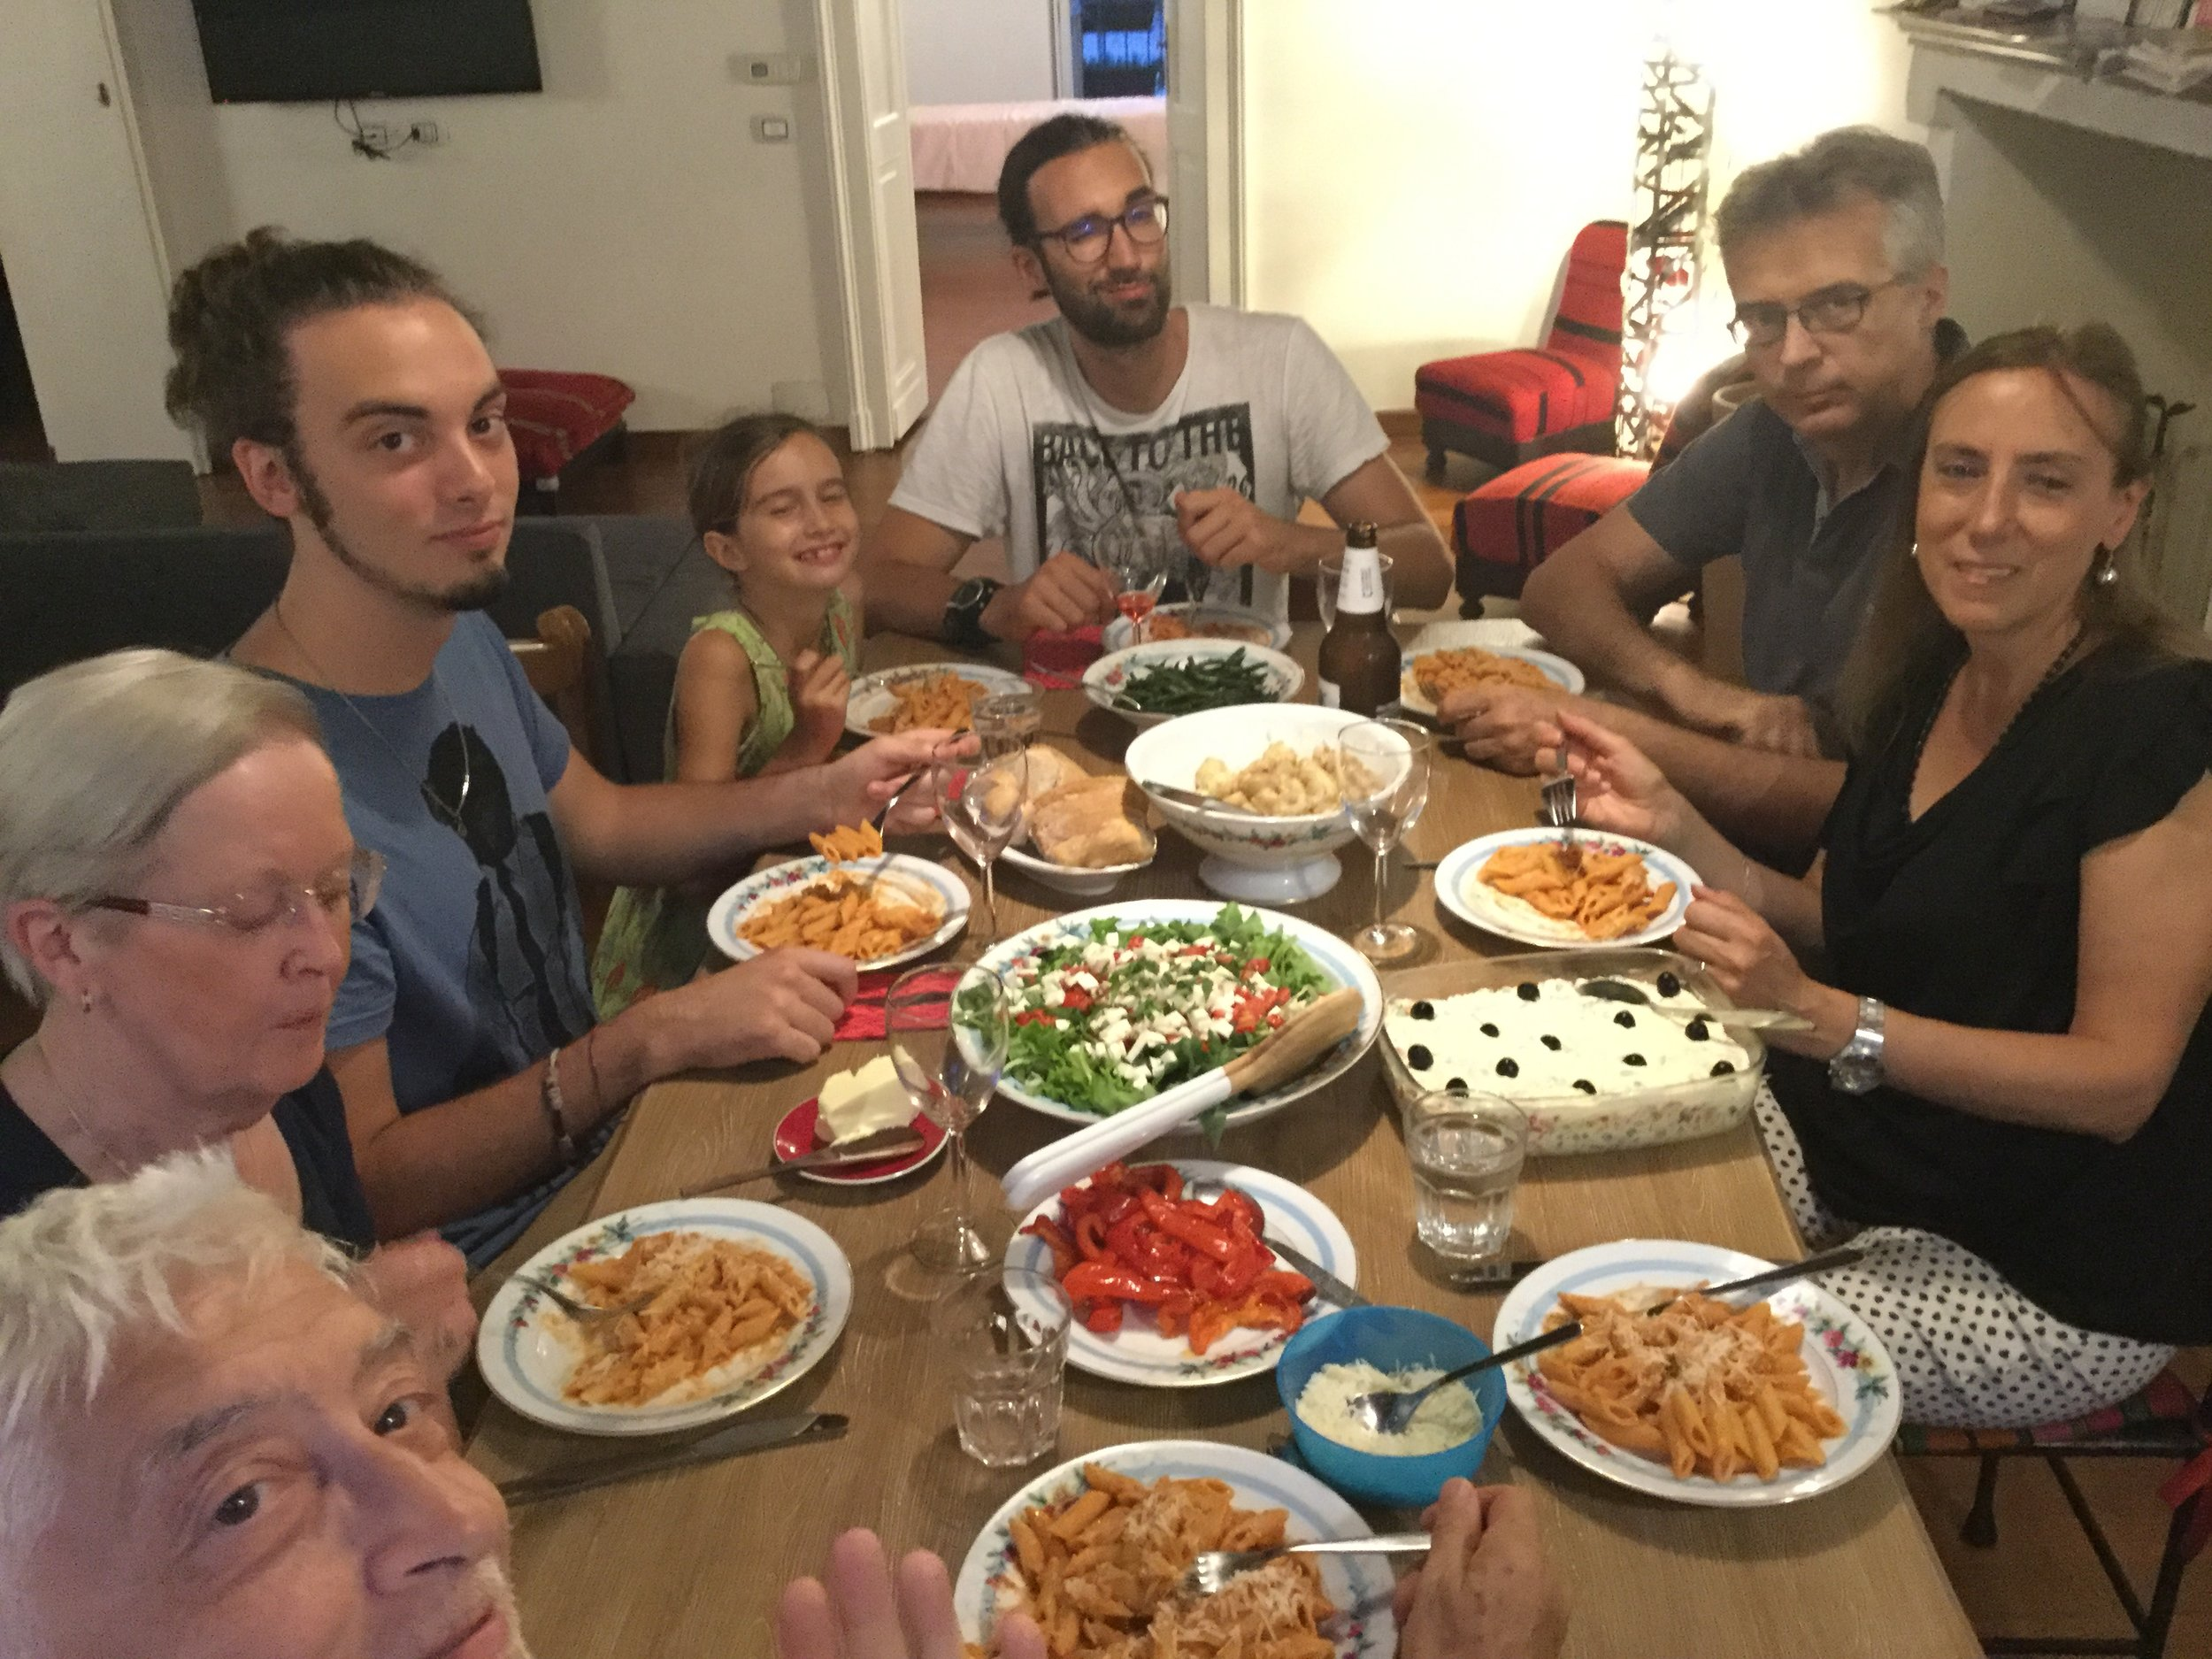 An earlier pasta dinner at our place: Dante, Eeva, Giuliano, Lili, Amedeo, Manuel, Lidia.